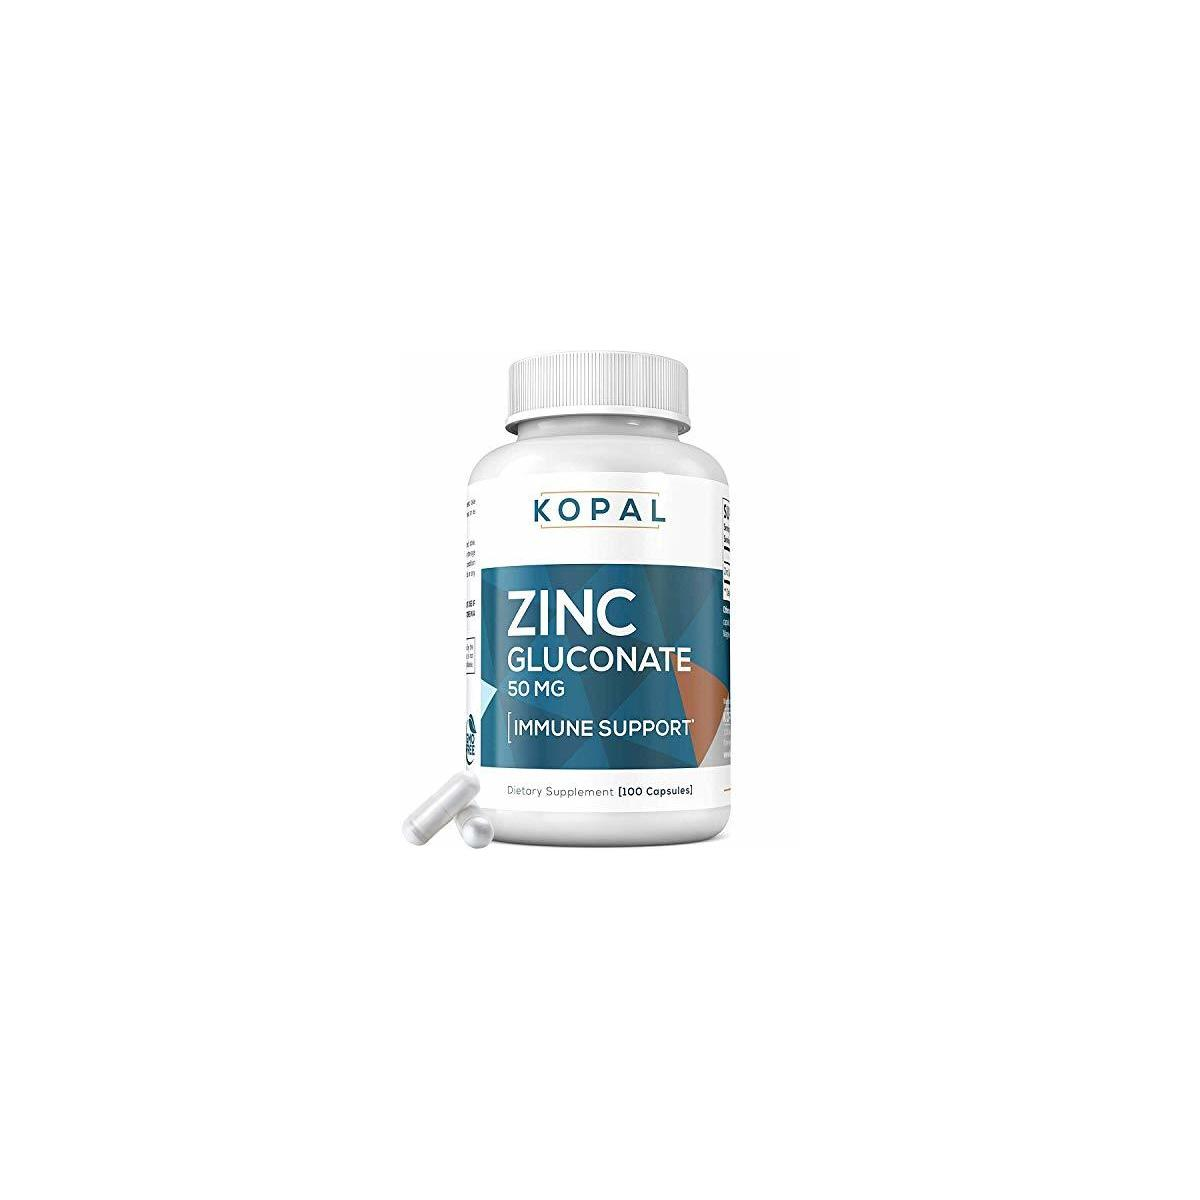 KOPAL DEFENSE – (50 mg) Zinc Gluconate – Doctor Approved, USA Made - Powerful, Potent, 100% Zinc Vitamin Supplements for Superior Immune Support, Recovery & Acne Defense – Gluten Free Non-GMO Capsule